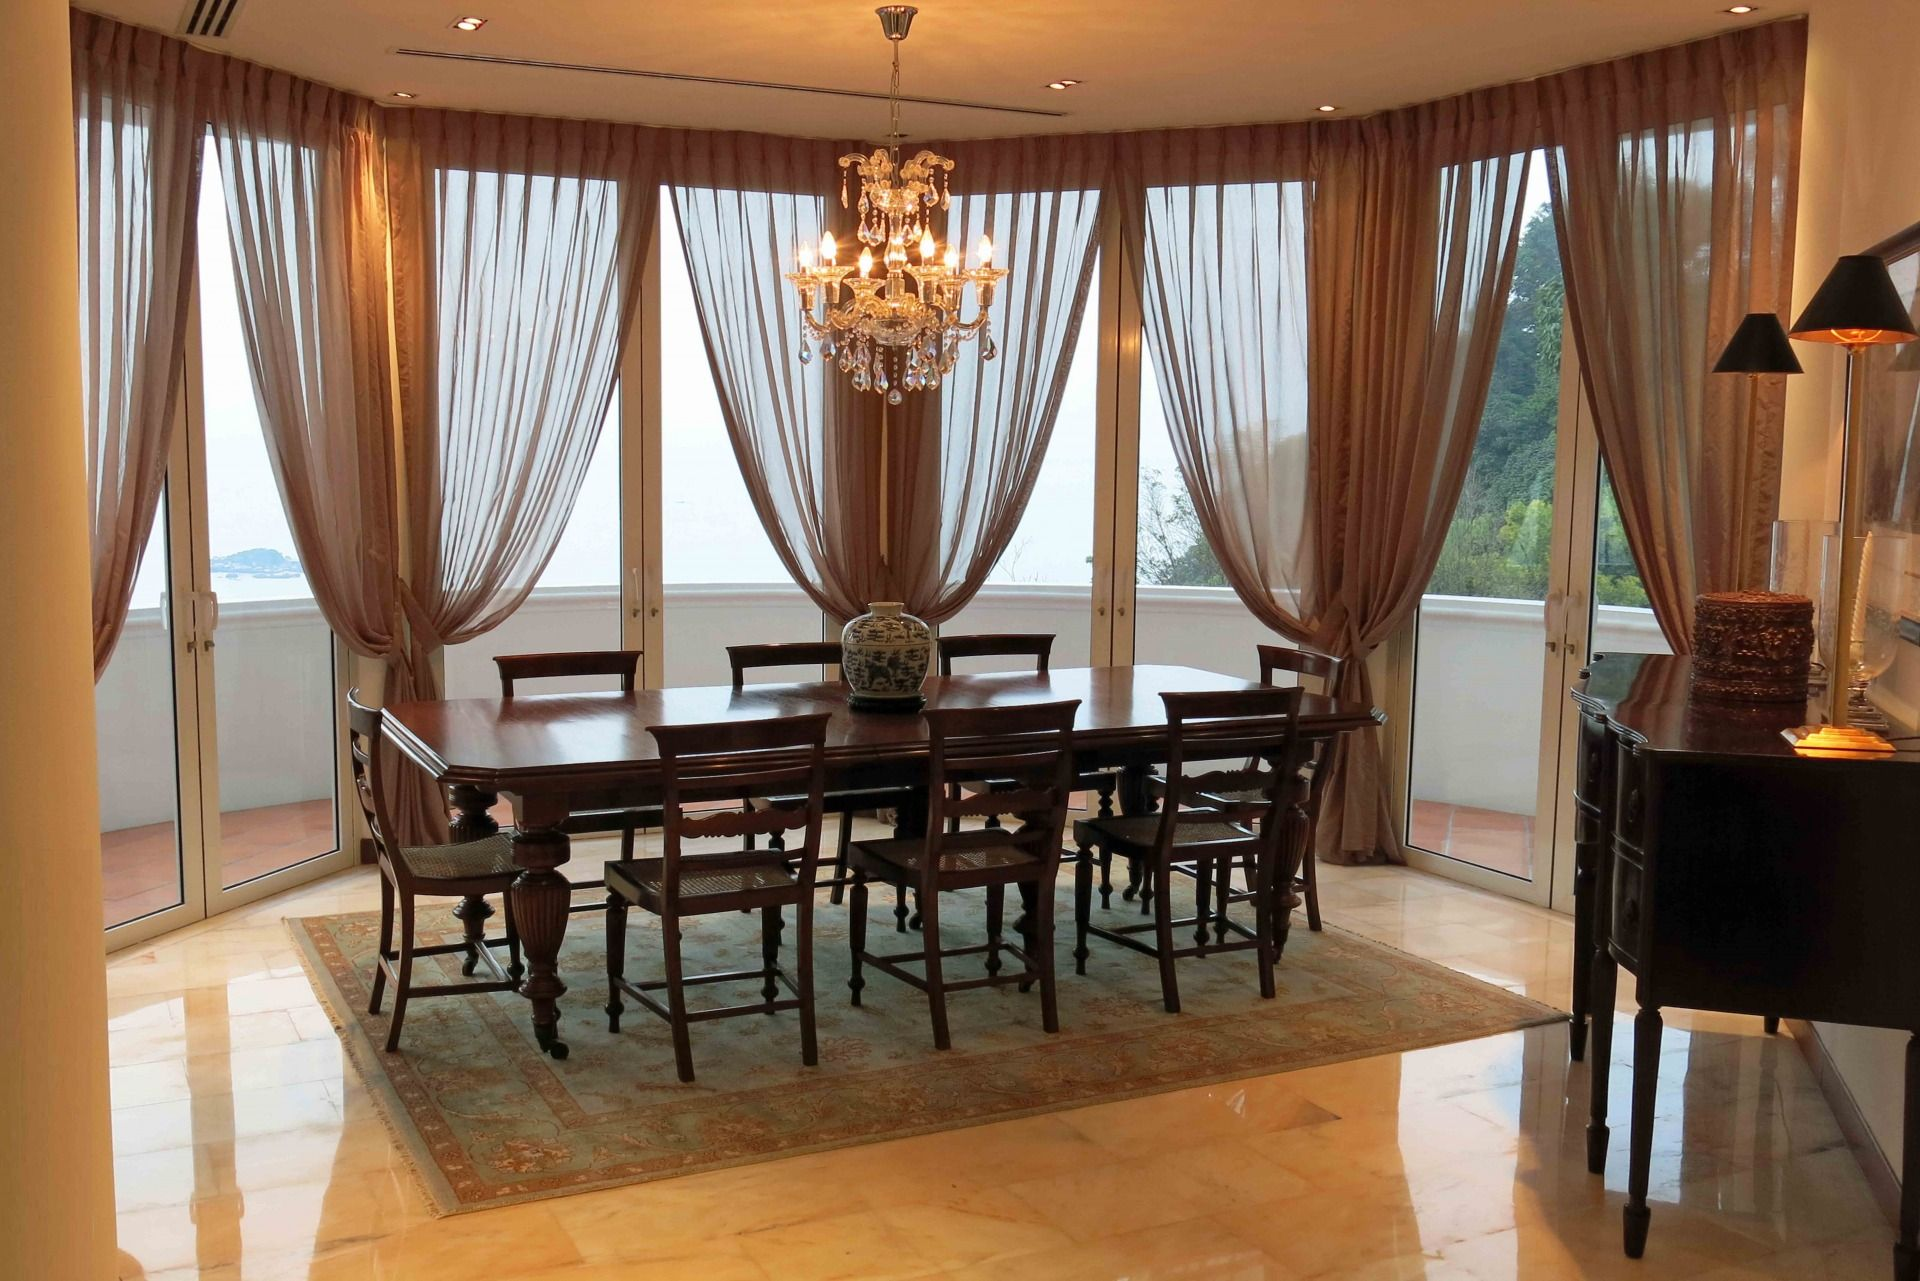 Interiors We Love 5 6L l The Past Perfect Collection l Singapore